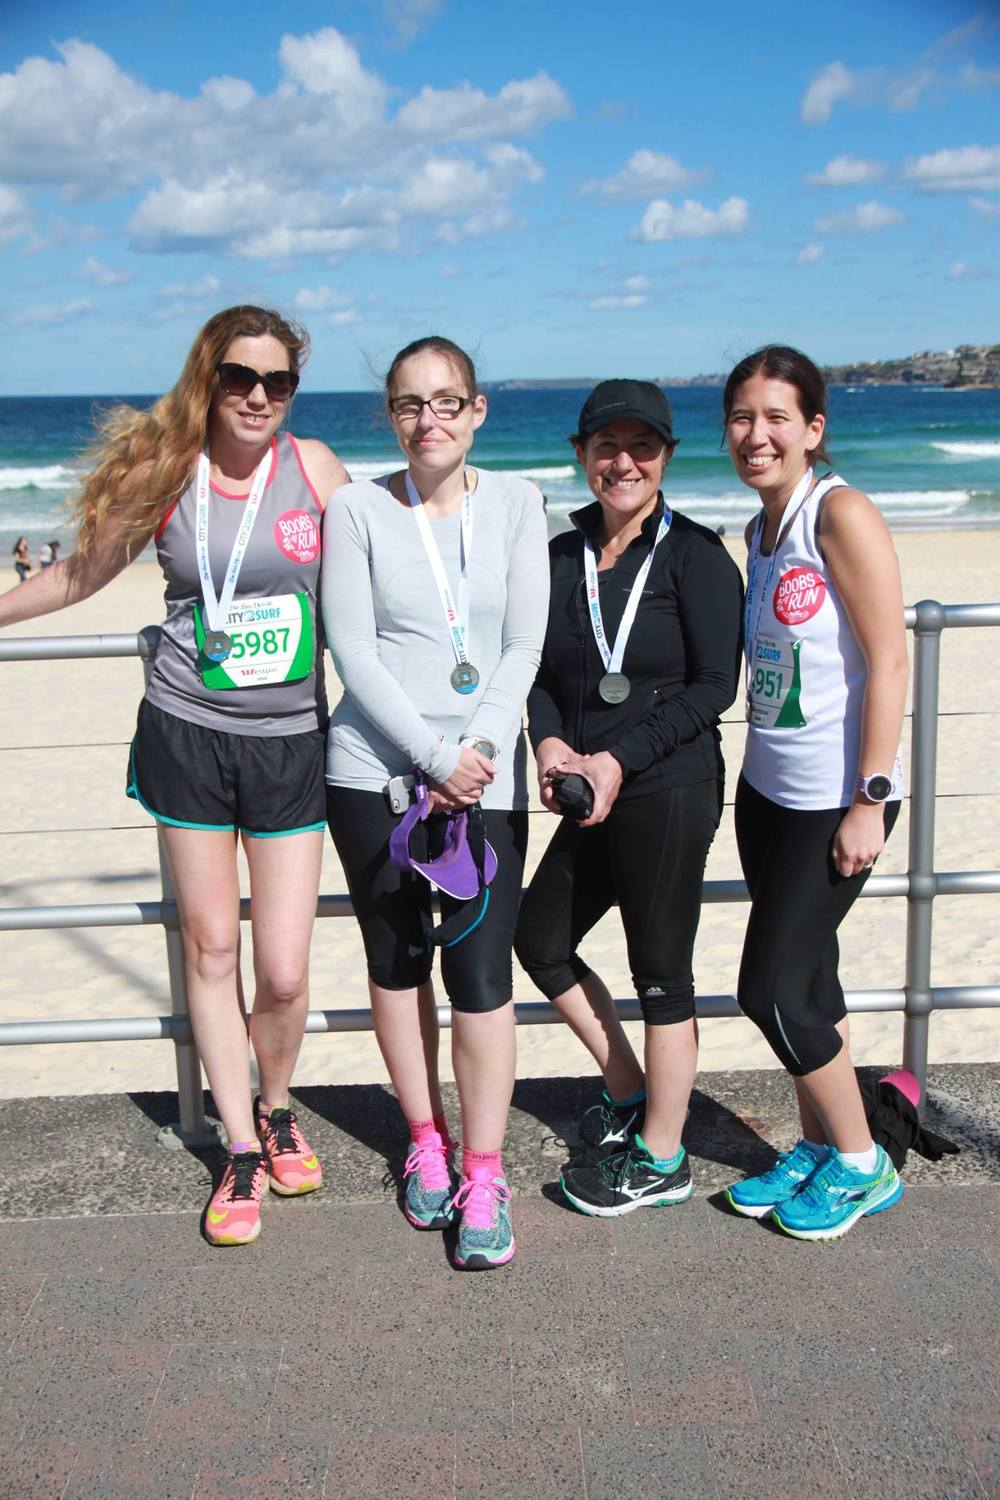 Our Amazing BOTR ladies smash the 14km City2Surf race!